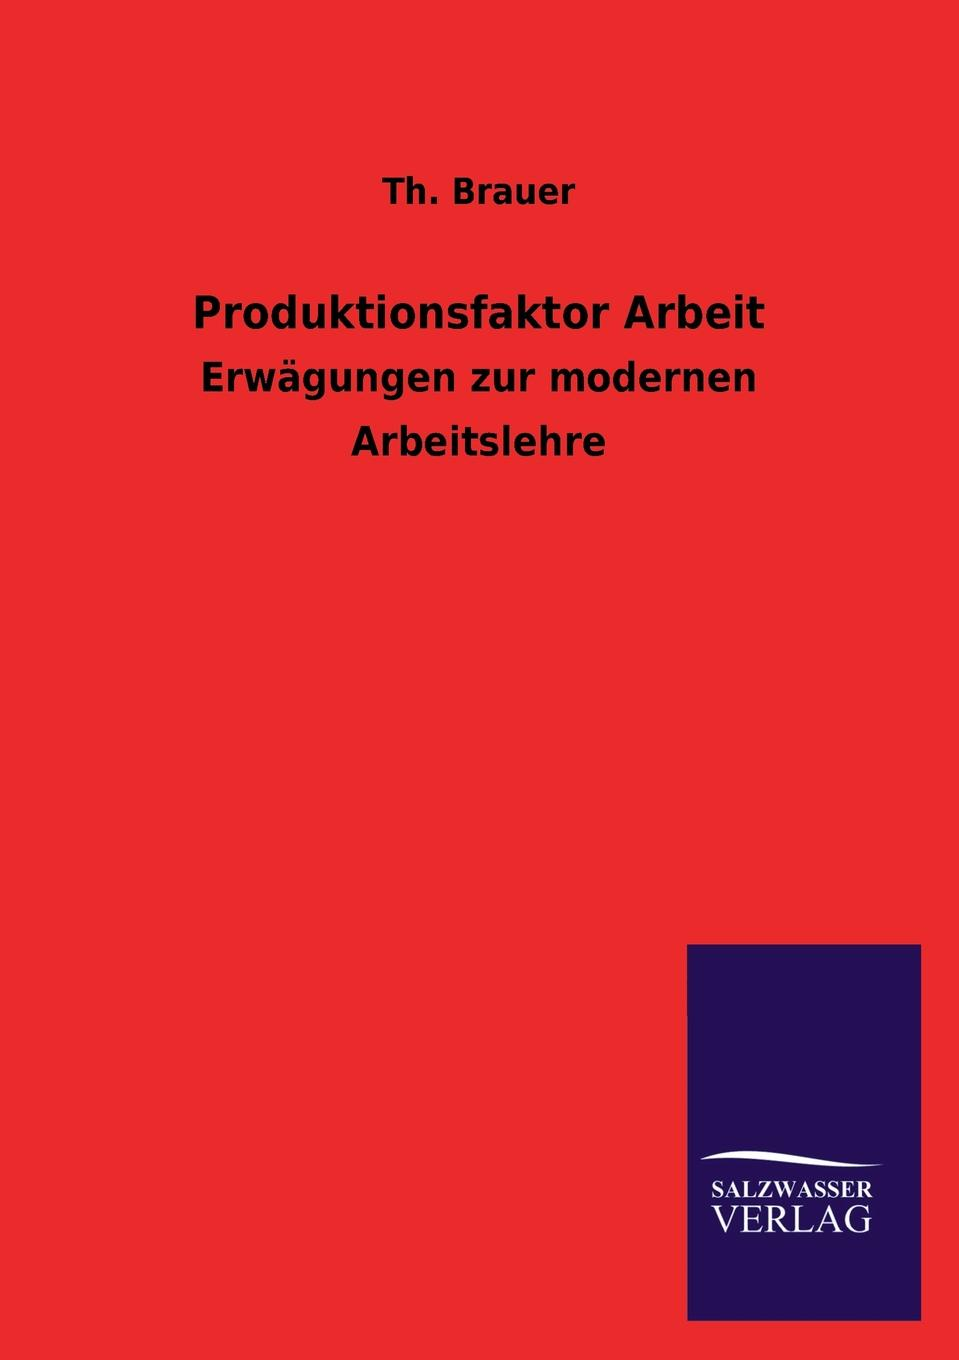 Th. Brauer Produktionsfaktor Arbeit richard brauer richard brauer collected papers – finite groups v 2